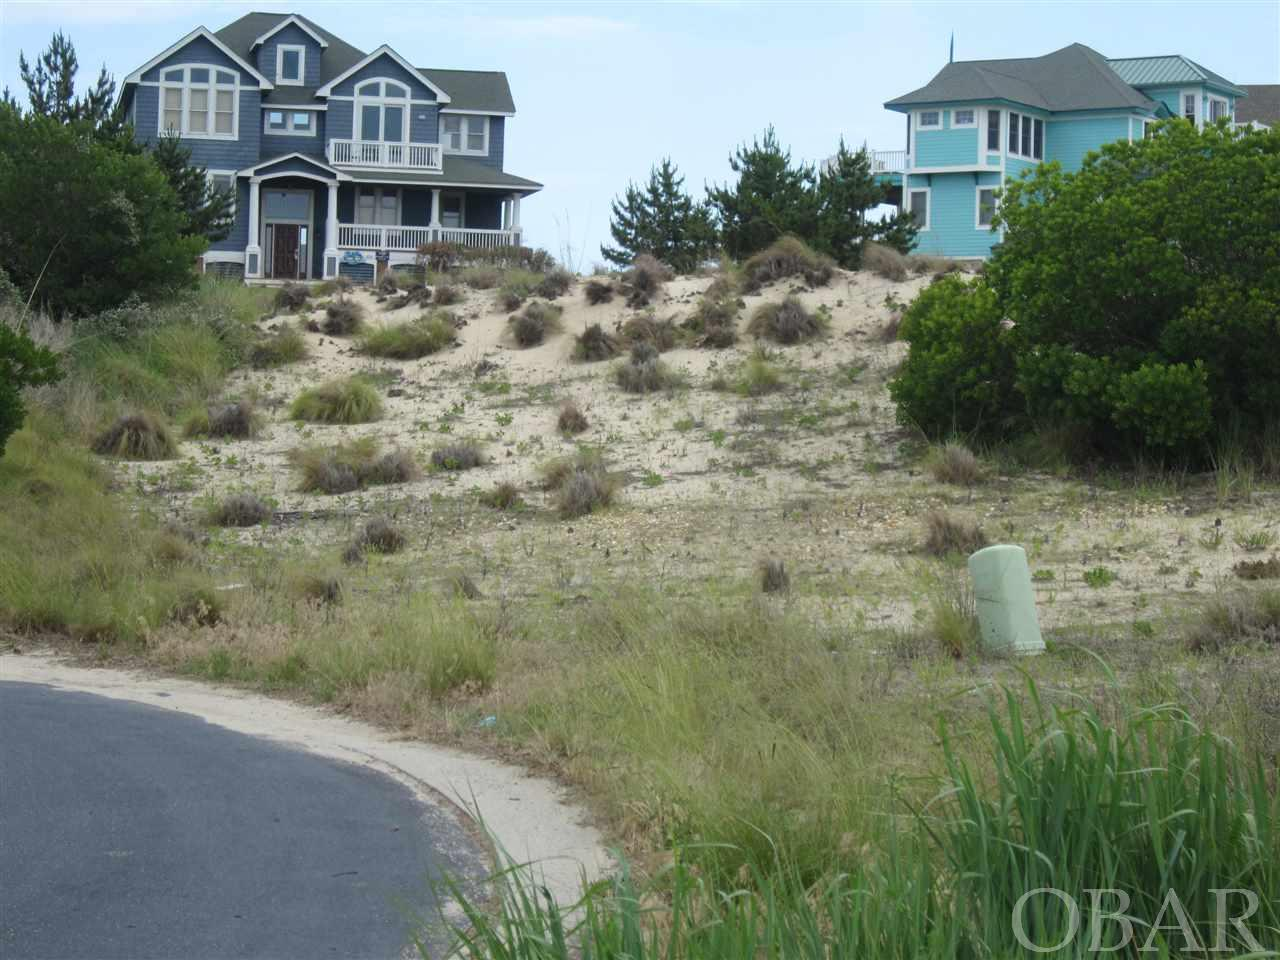 676 Oyster Catcher Court,Corolla,NC 27927,Lots/land,Oyster Catcher Court,102385